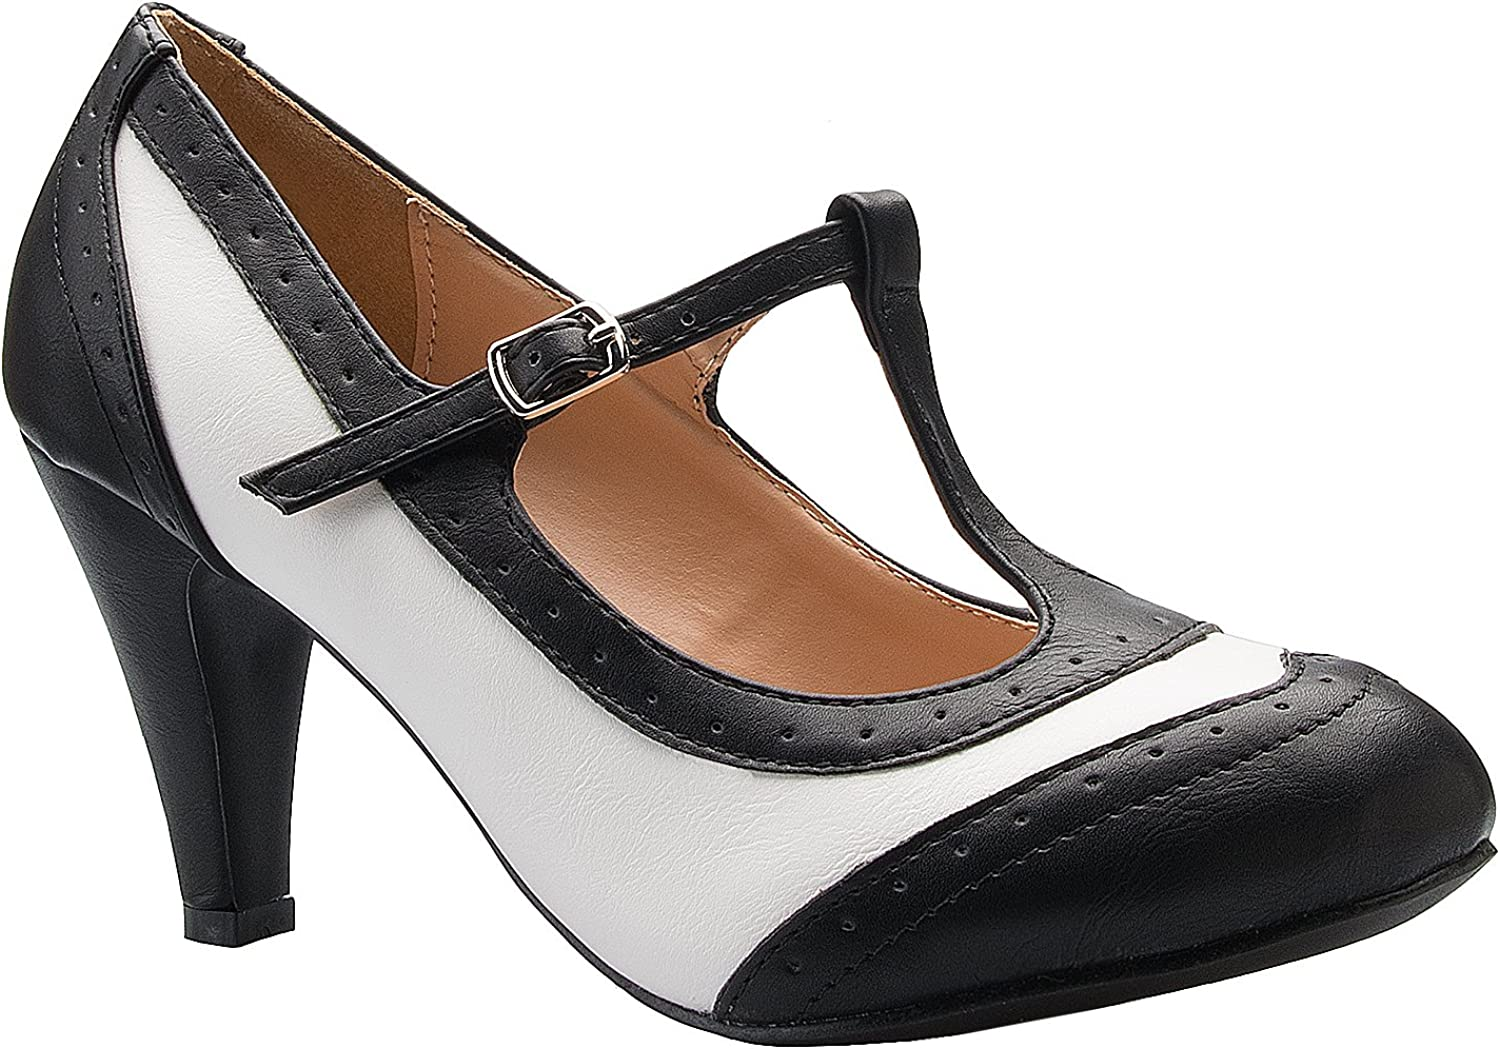 OLIVIA K Womens Mary Jane Pumps - Low Heels - Two color Vintage Retro Round Toe shoes